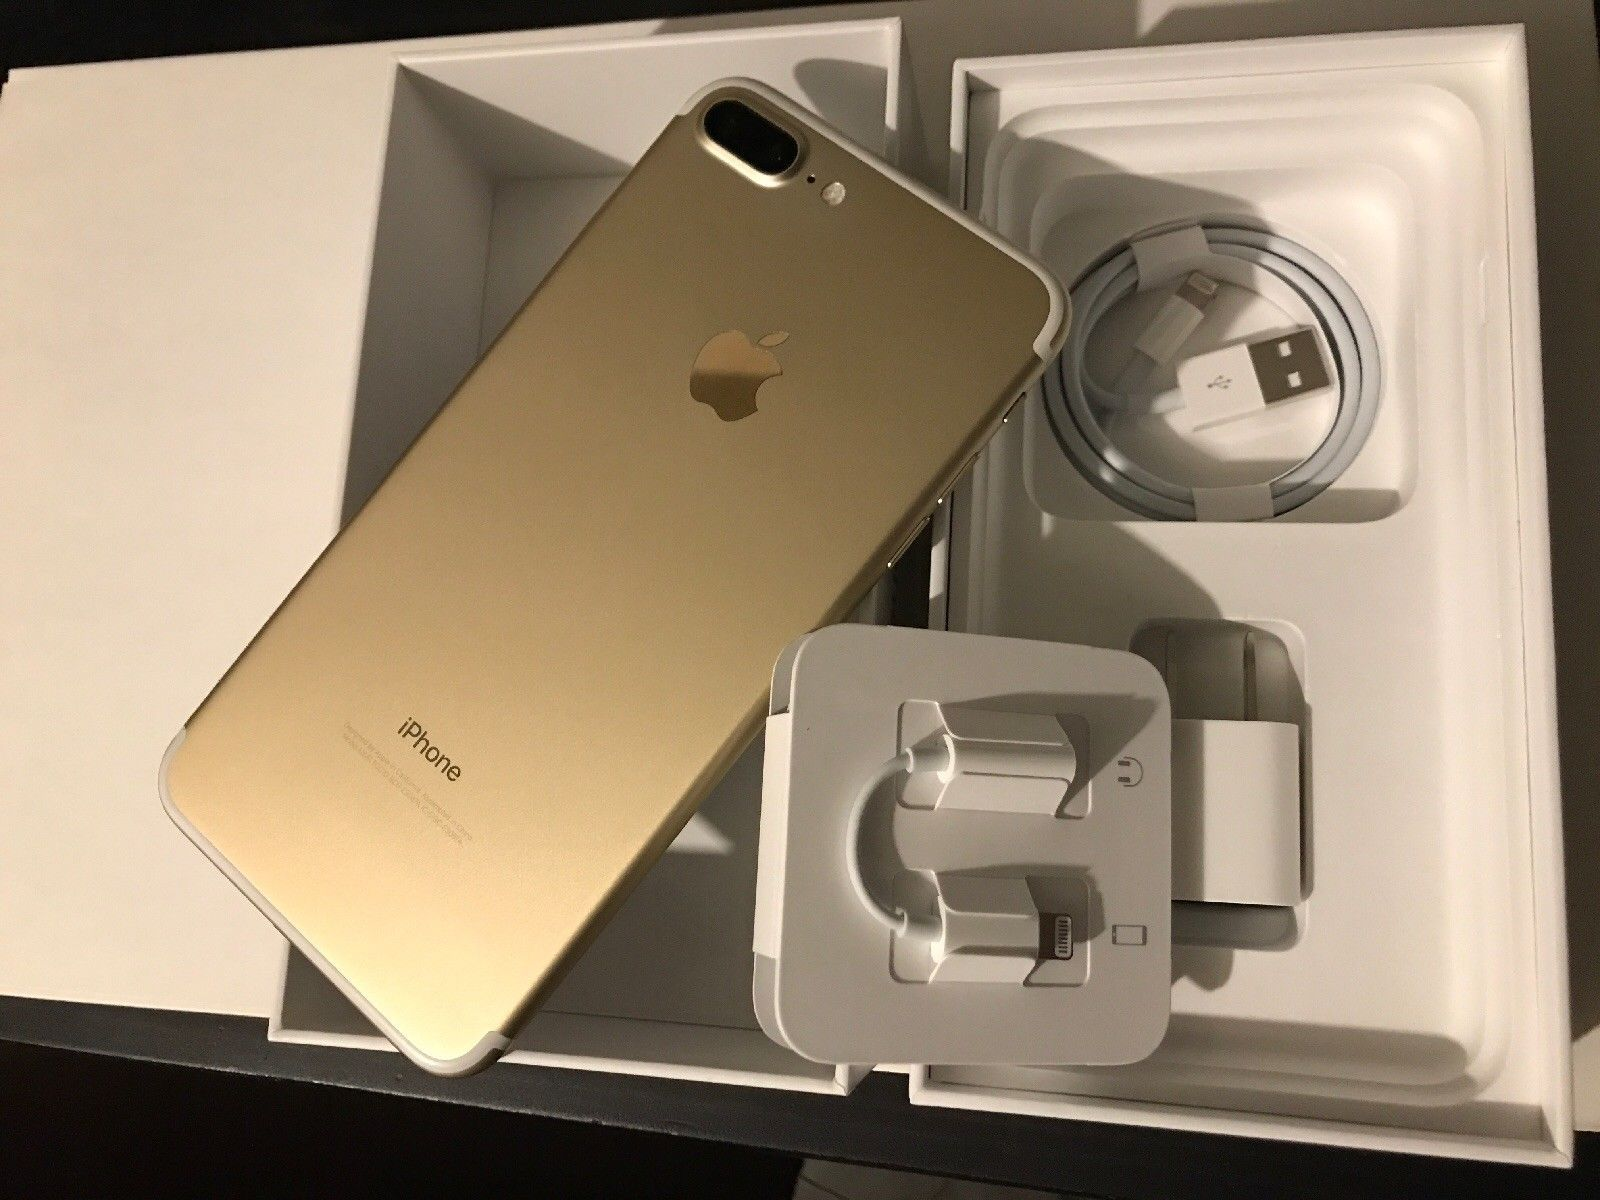 400 00 | Apple iPhone 7 Plus - 128GB - Gold (AT&T) A1784